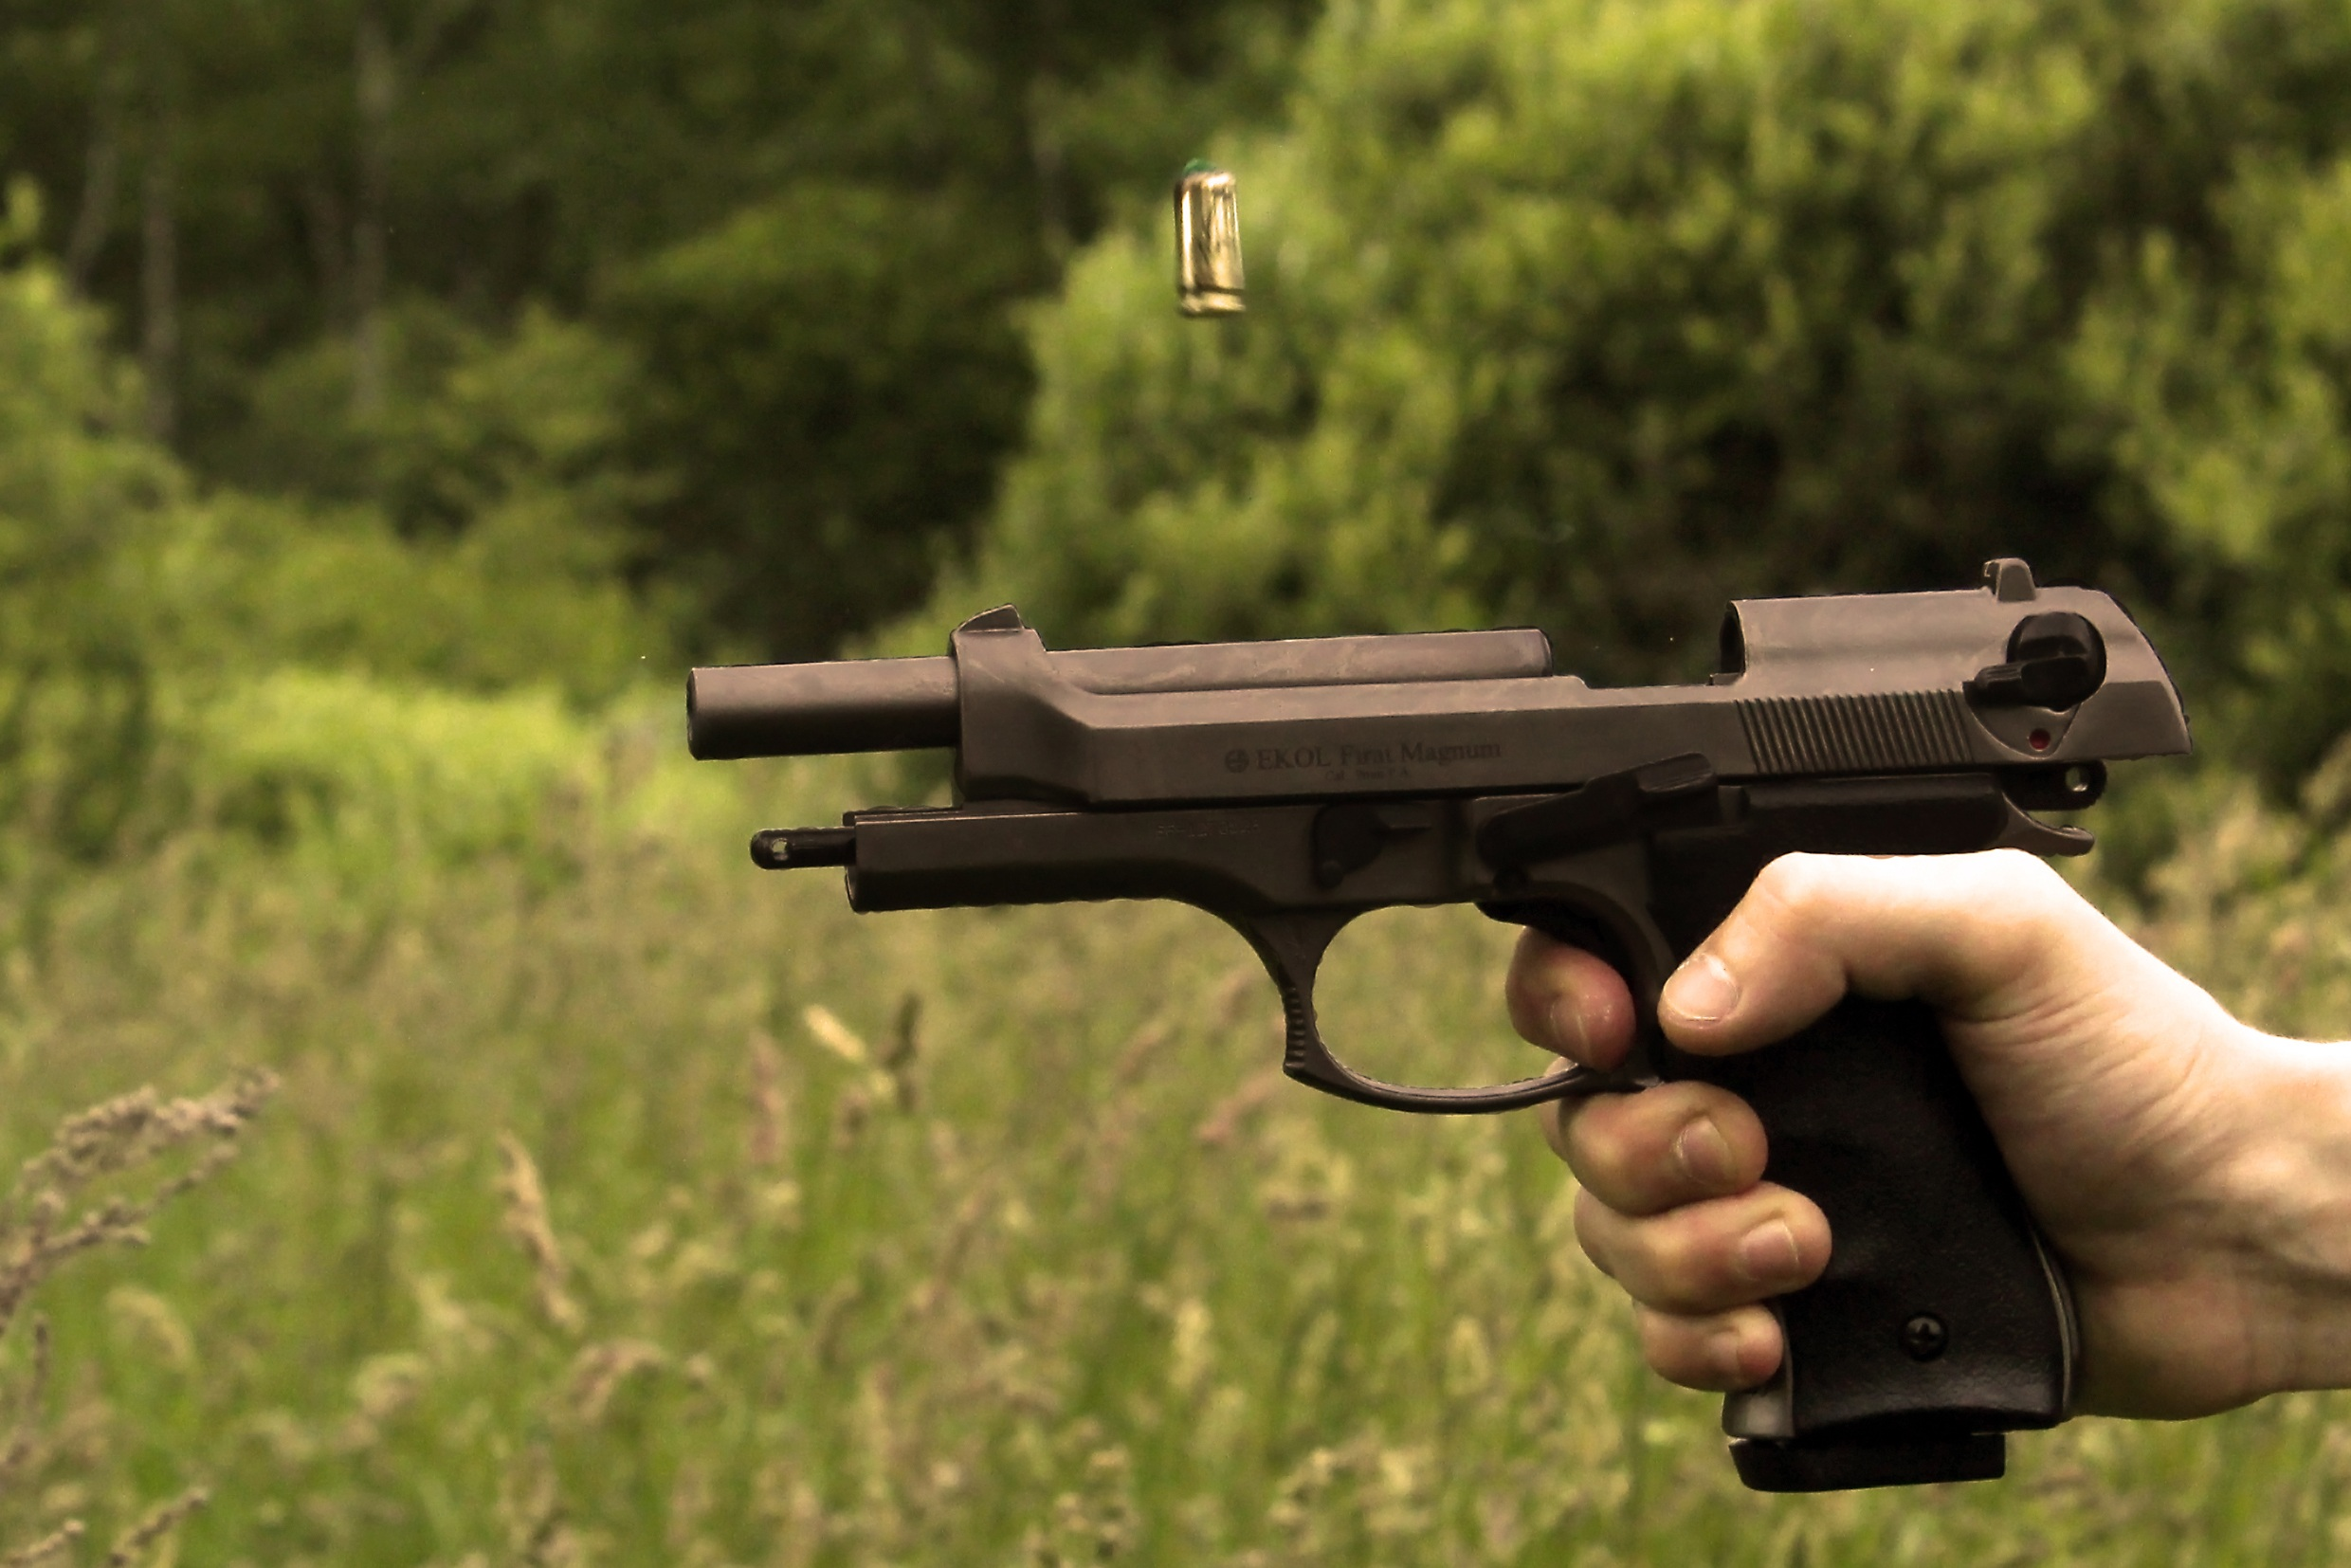 Firearm Tech: 4 Amazing Advances In Gun Safety and Functionality